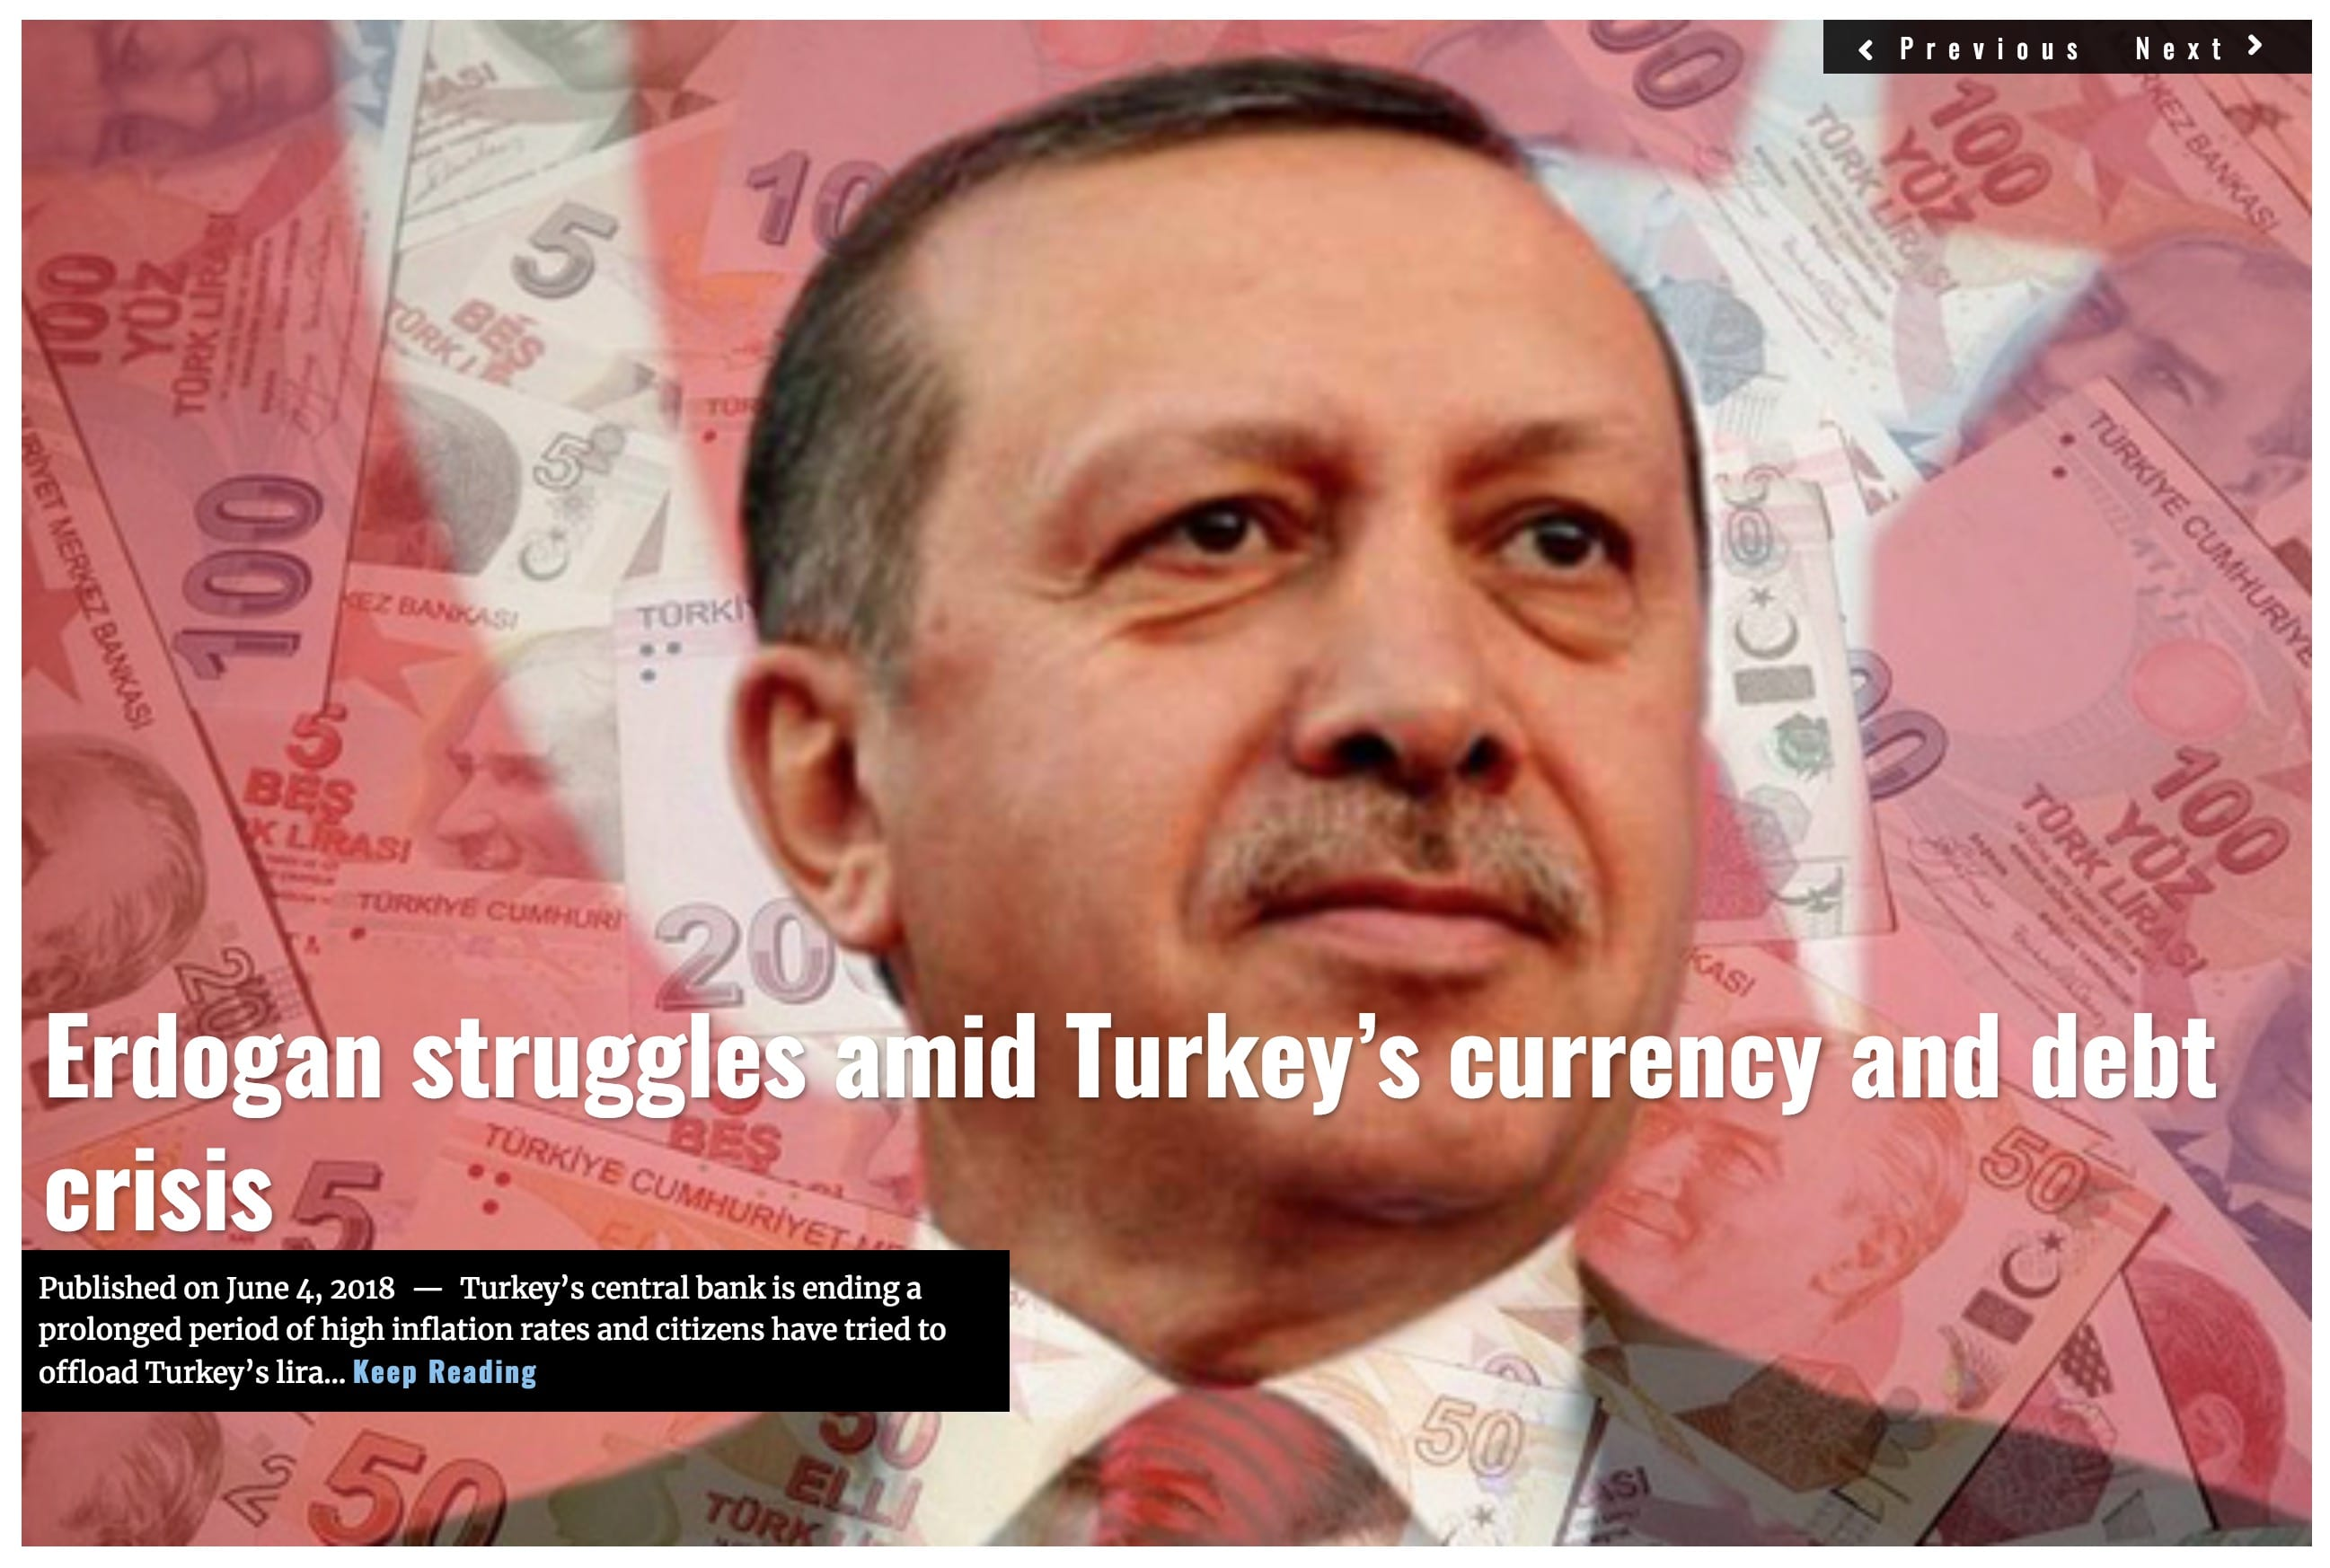 Image Lima Charlie News Headline Erdogan struggles JUN 4 2018